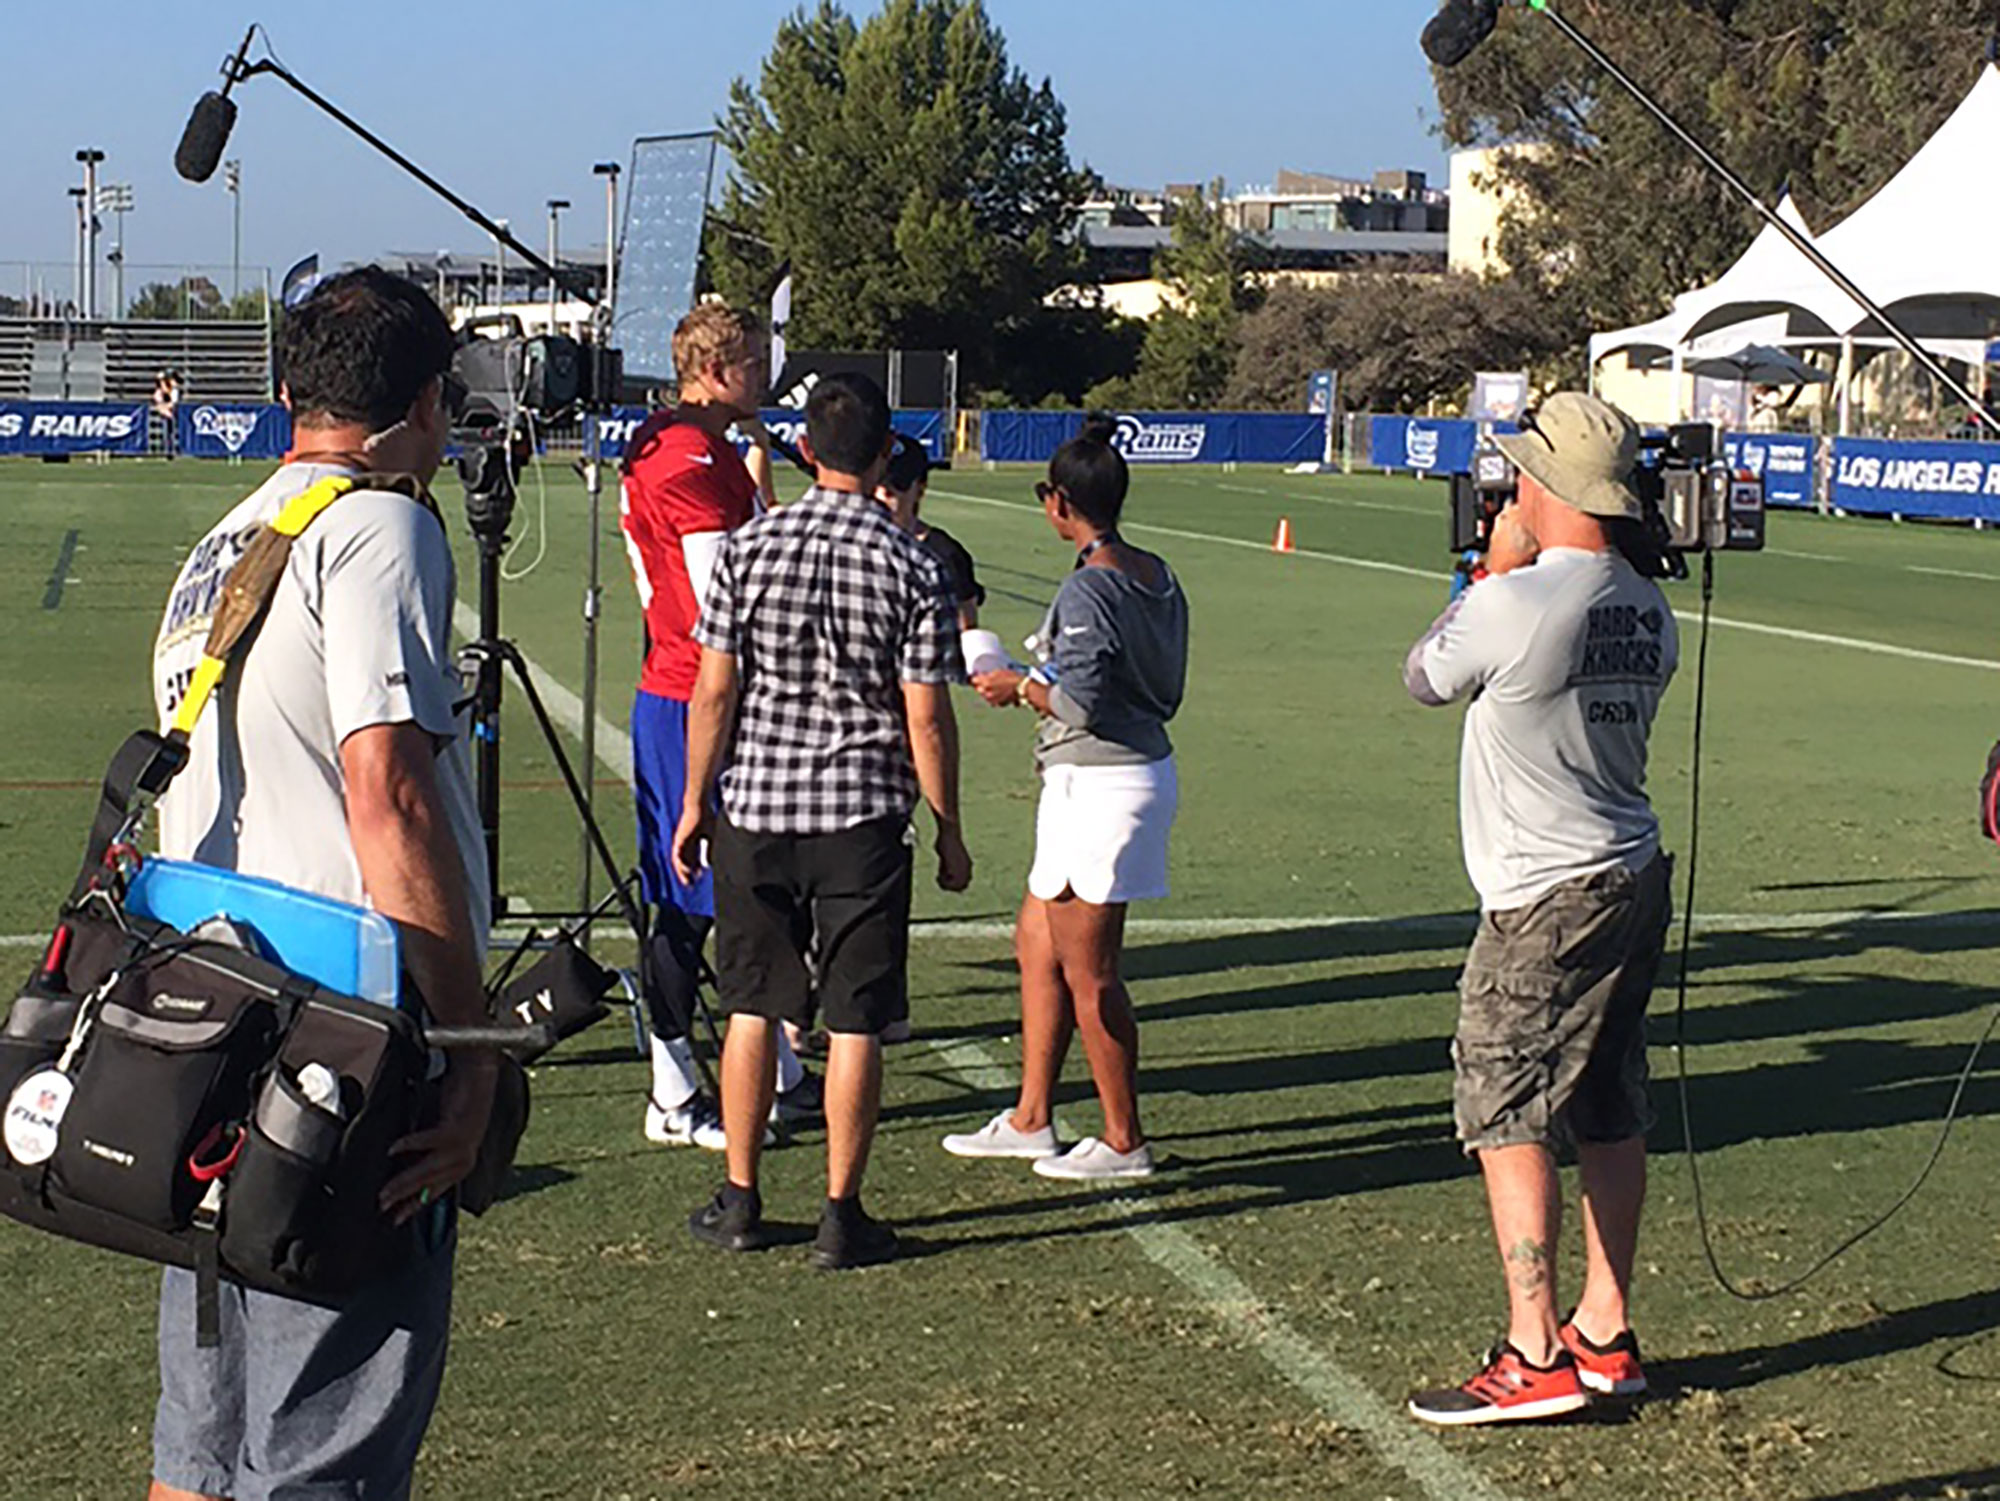 An HBO crew encircles rookie Jared Goff, who has already emerged as a central storyline of this season's 'Hard Knocks'.